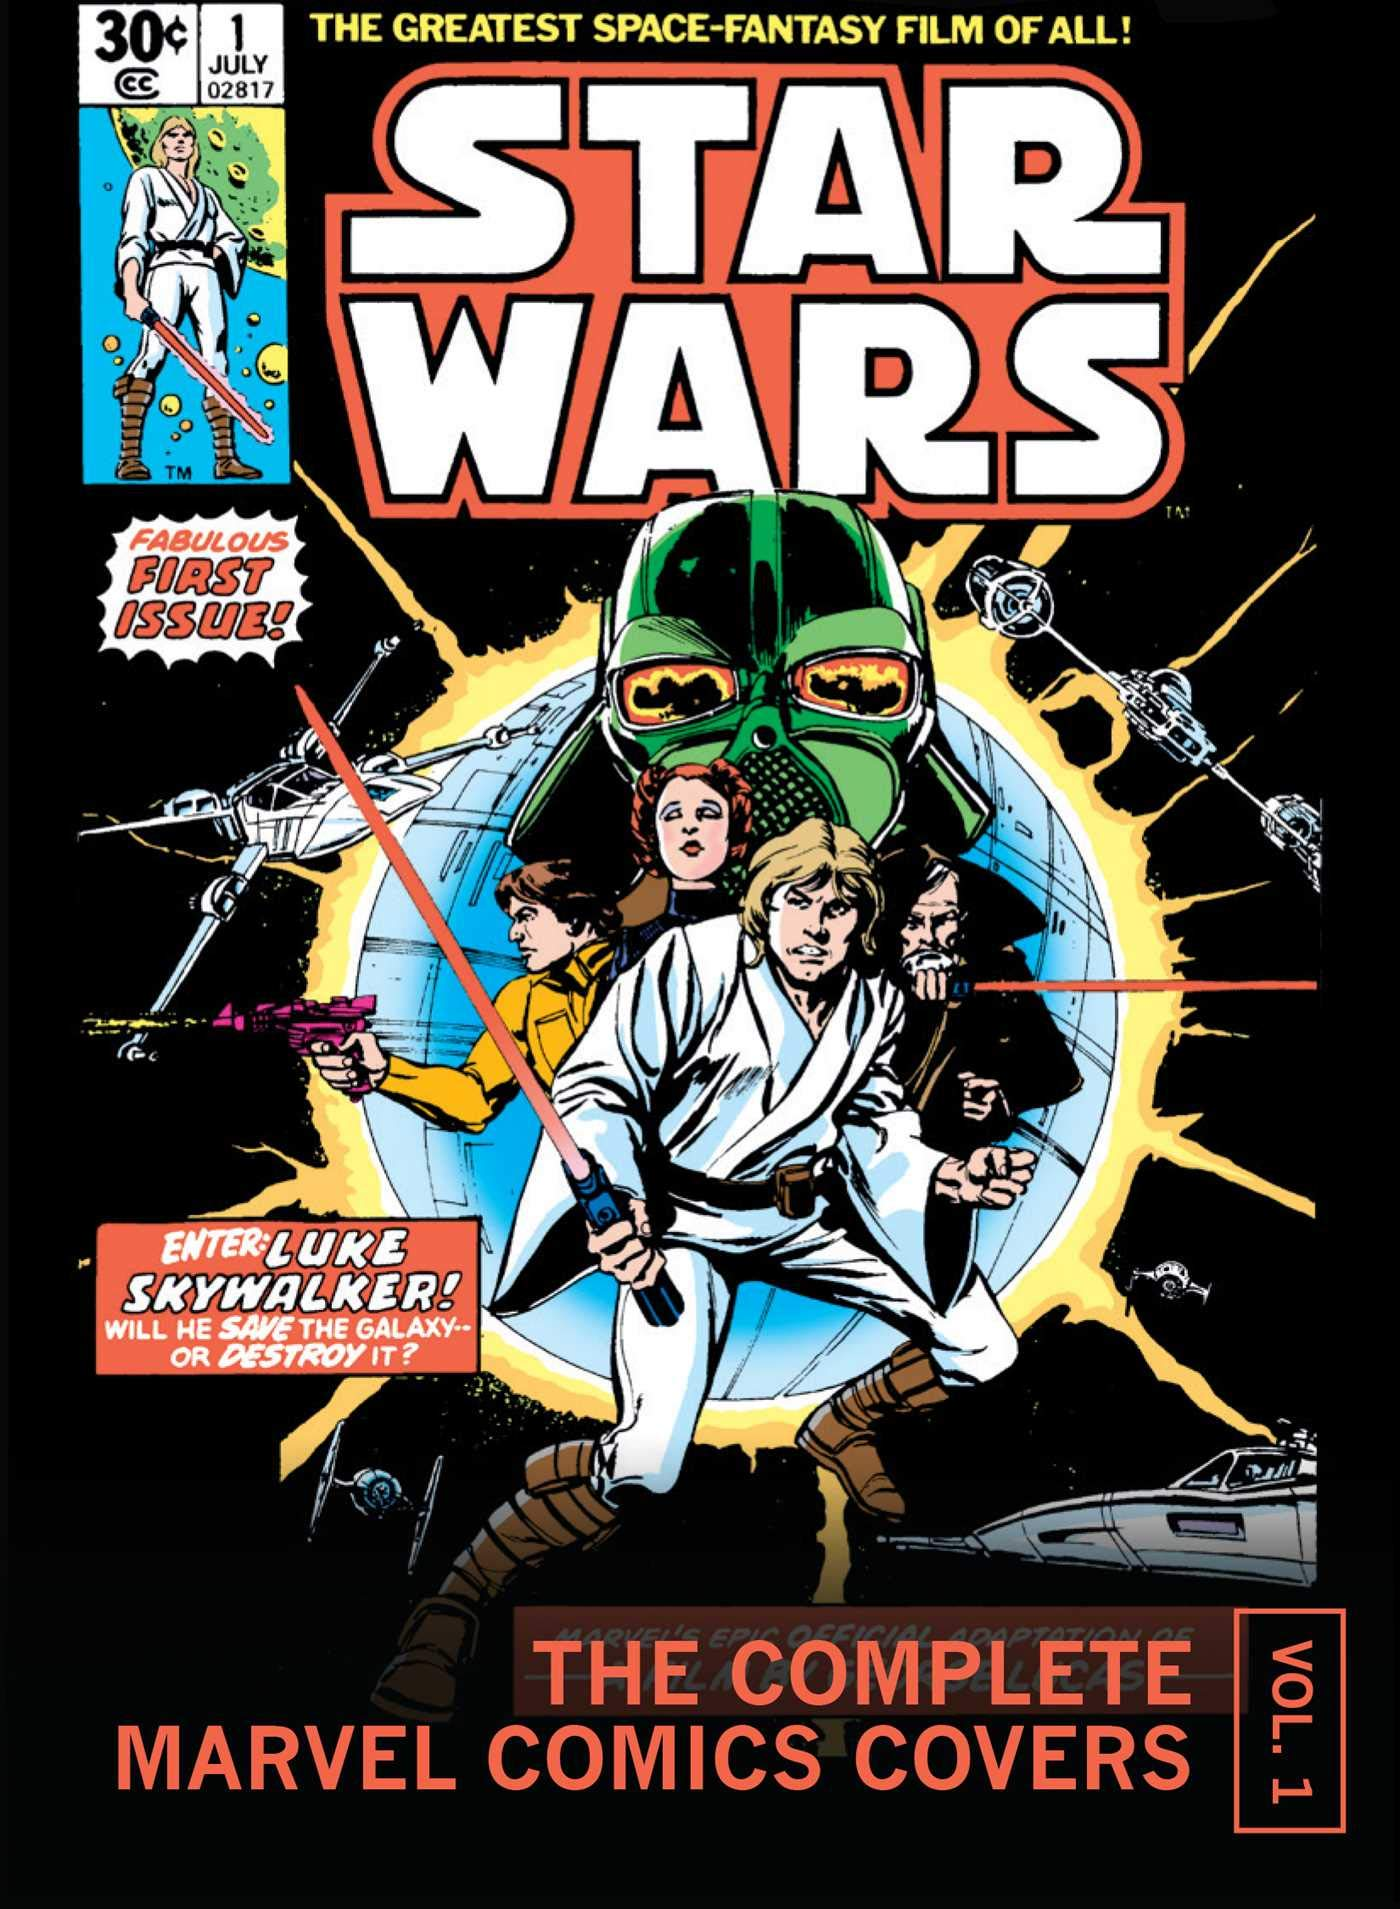 Star Wars: The Complete Marvel Comics Covers Mini Book, Volume 1 (08.10.2019)